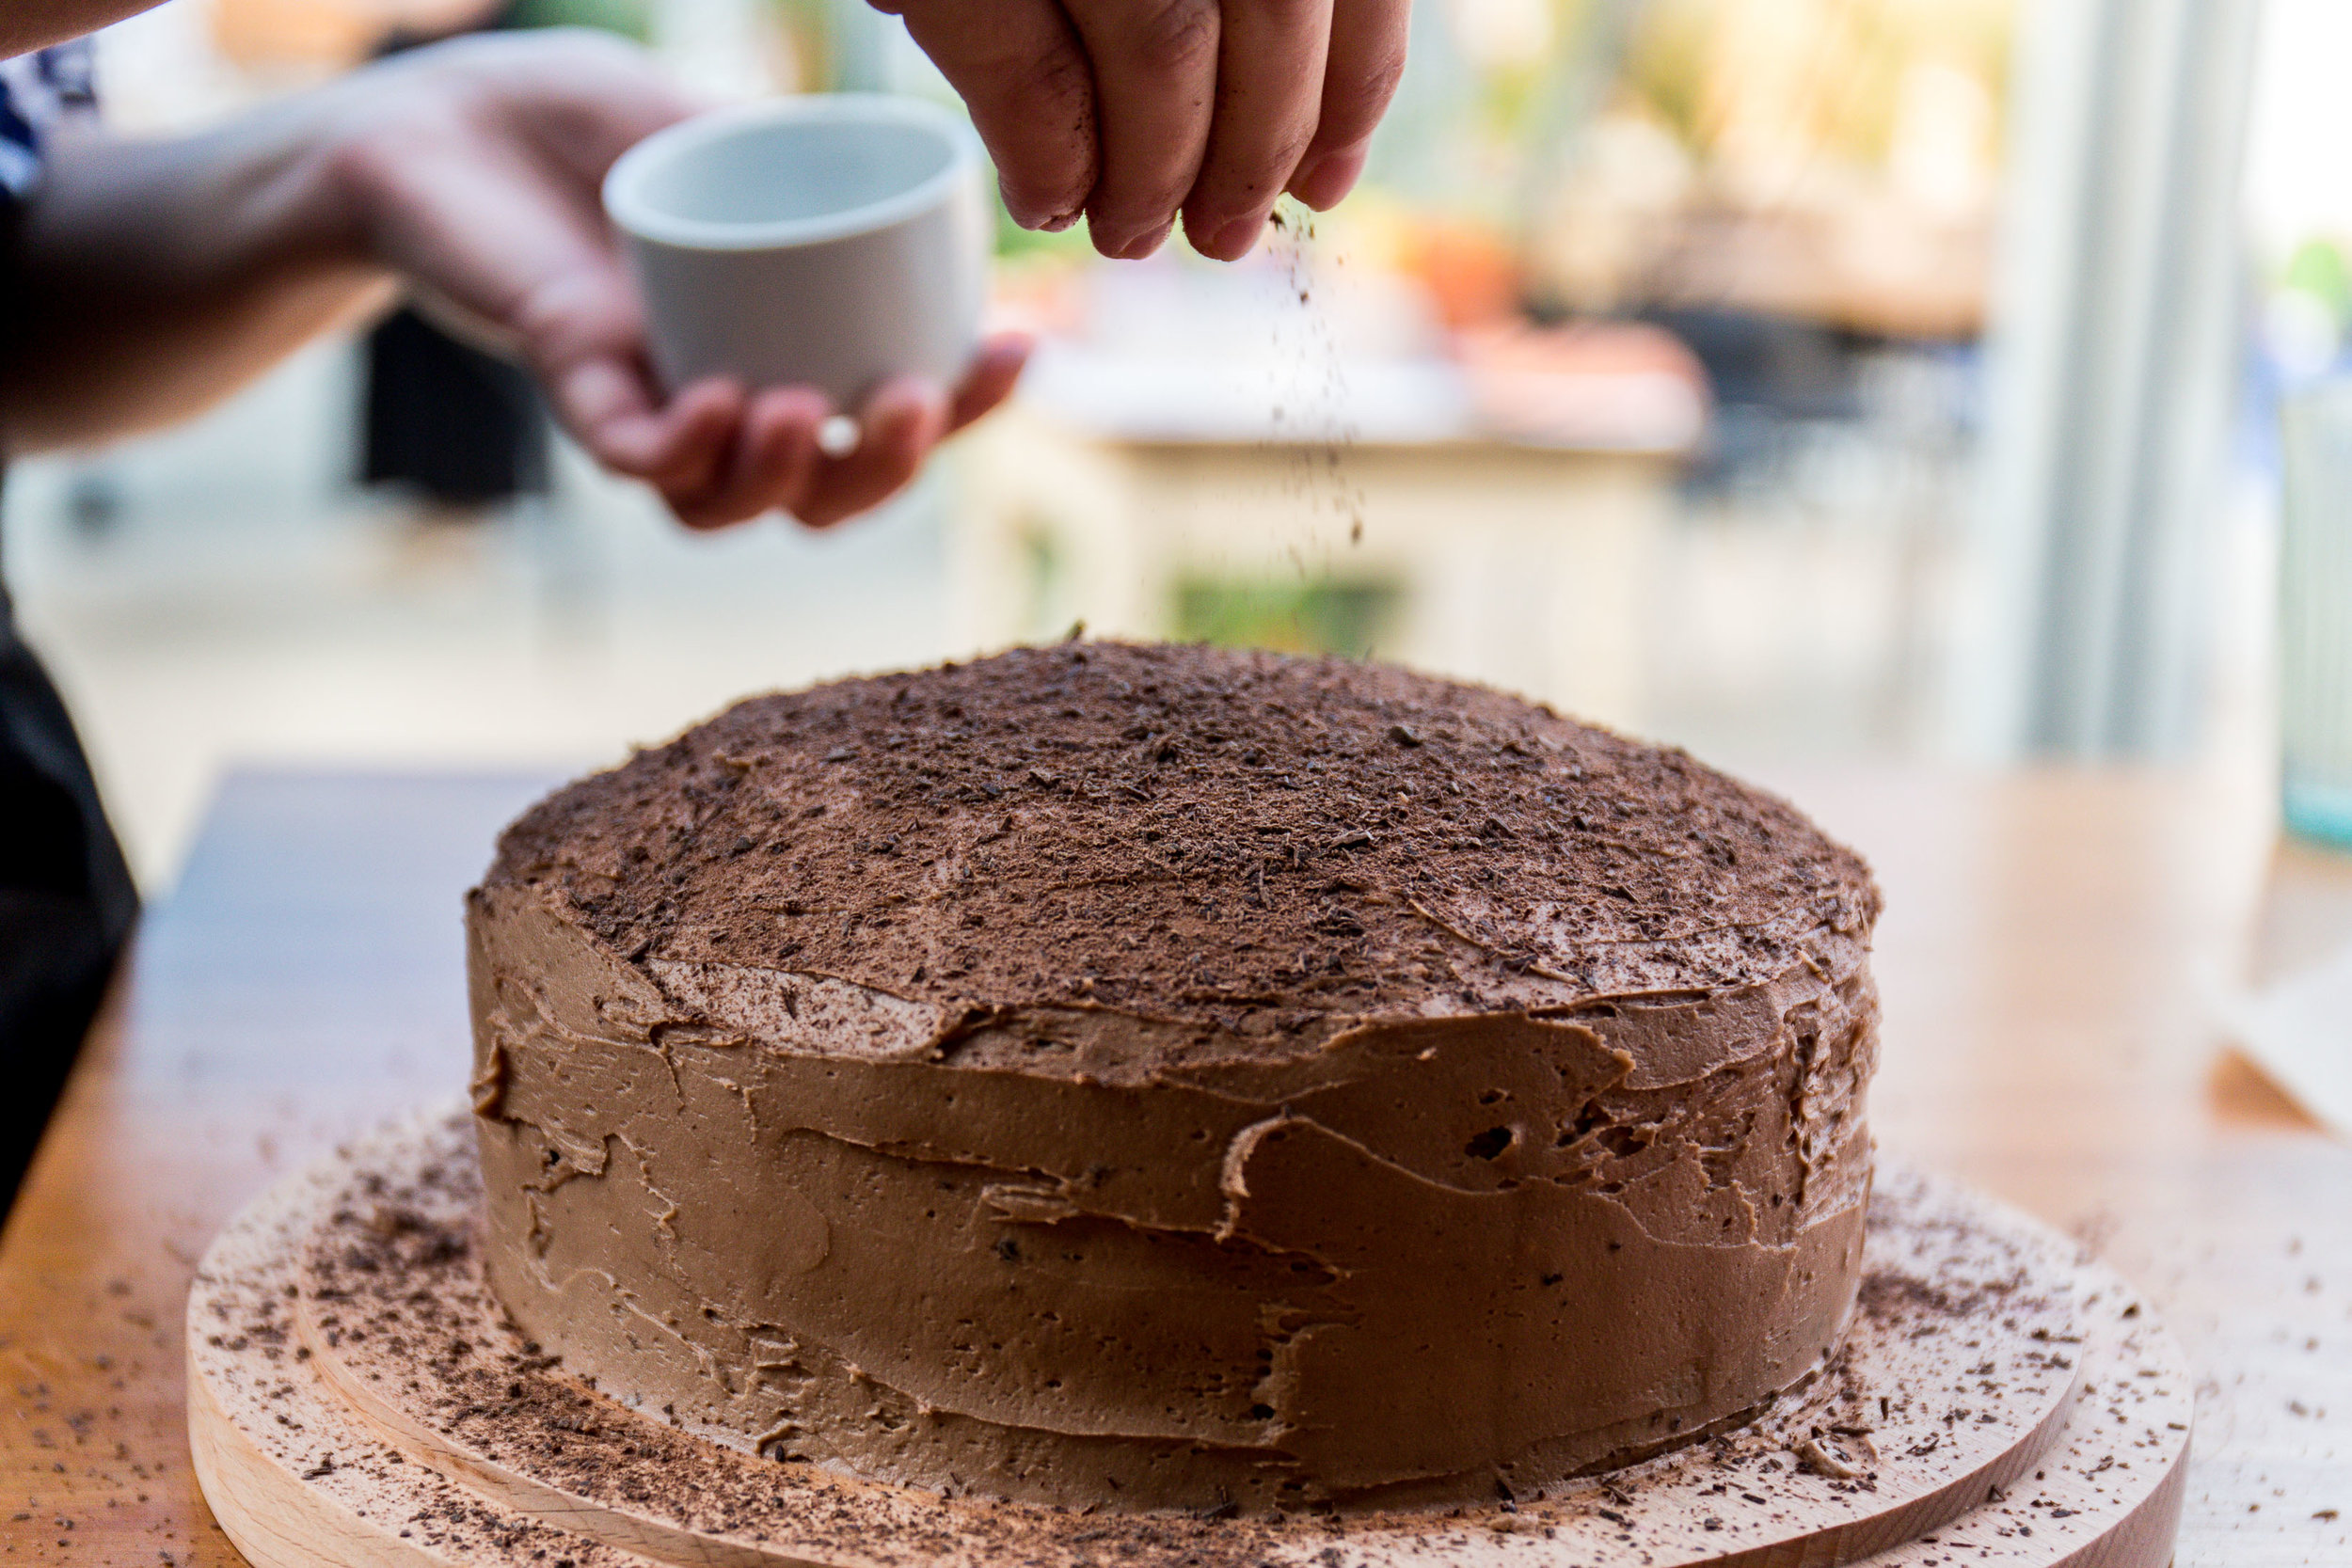 Sussex-mother-decorating-chocolate-cake.jpg